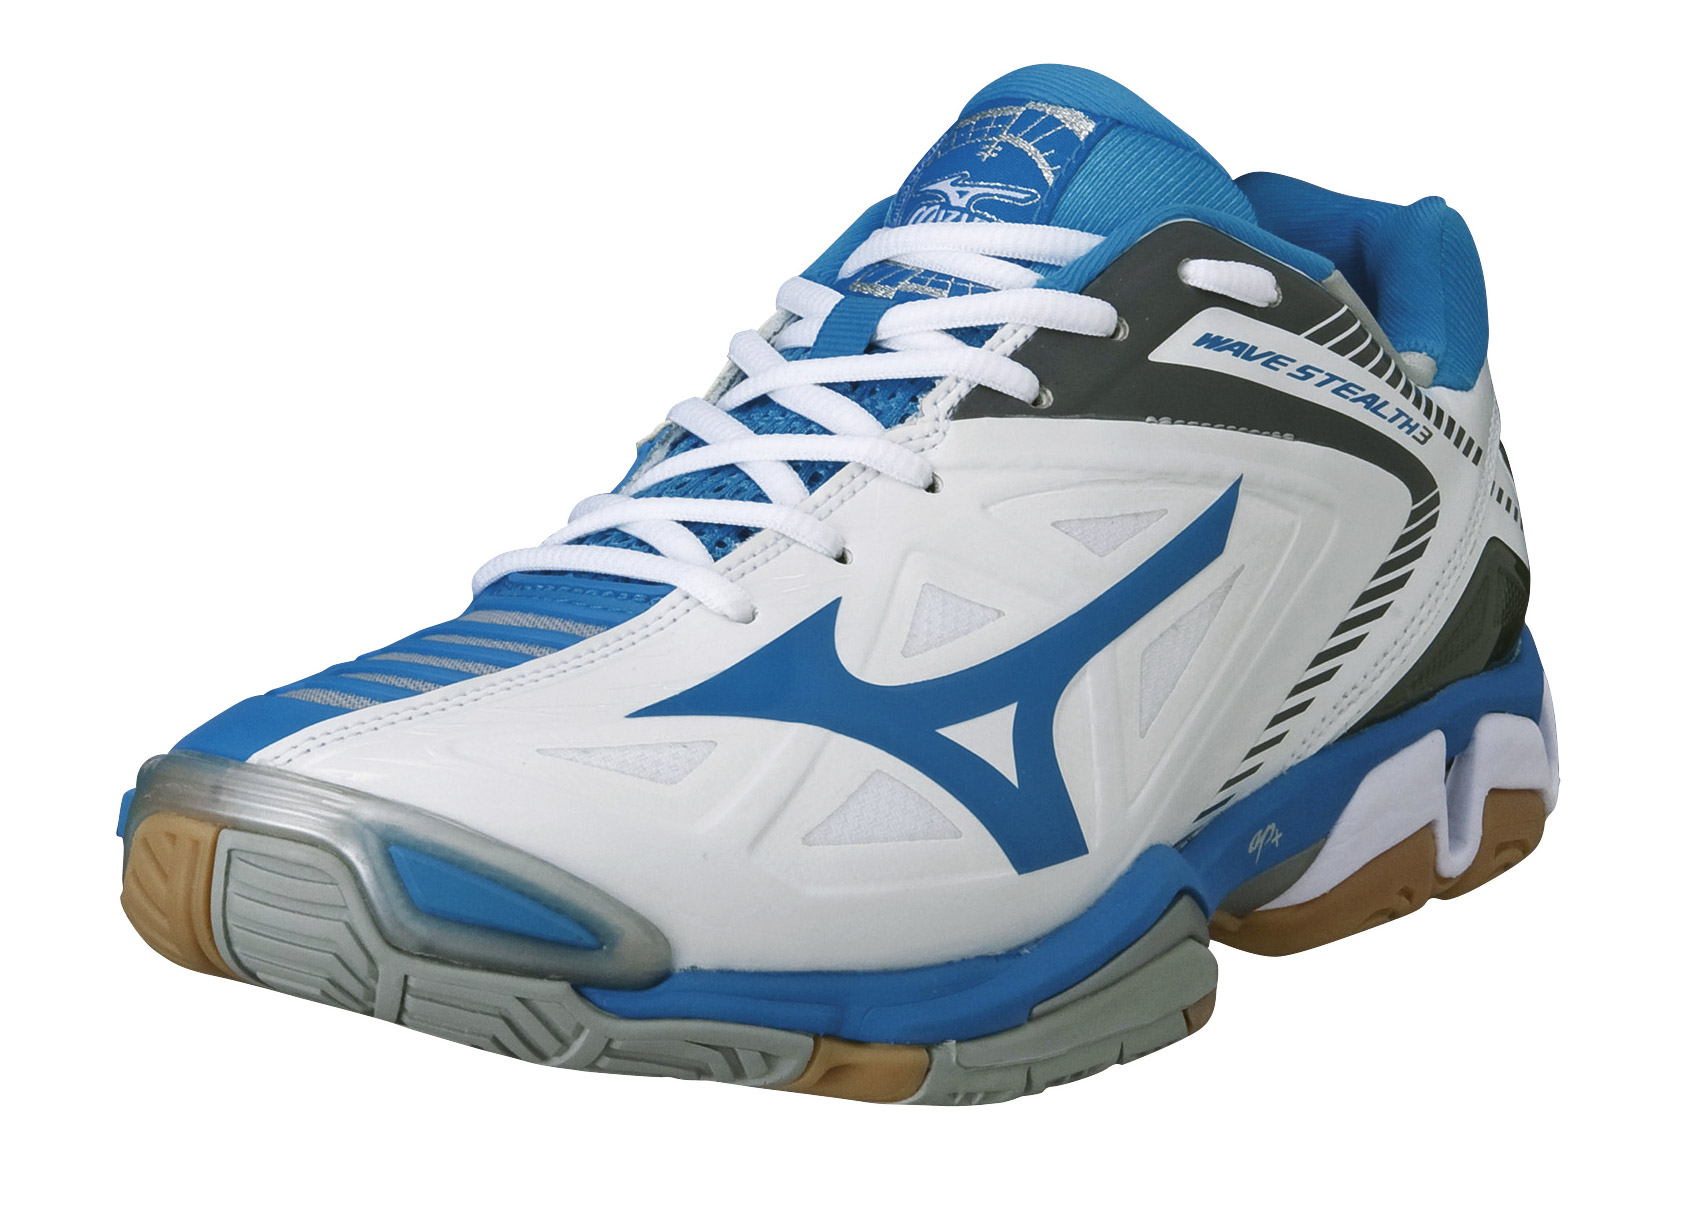 Mizuno Wave Stealth 3 X1GB140026 EUR 38